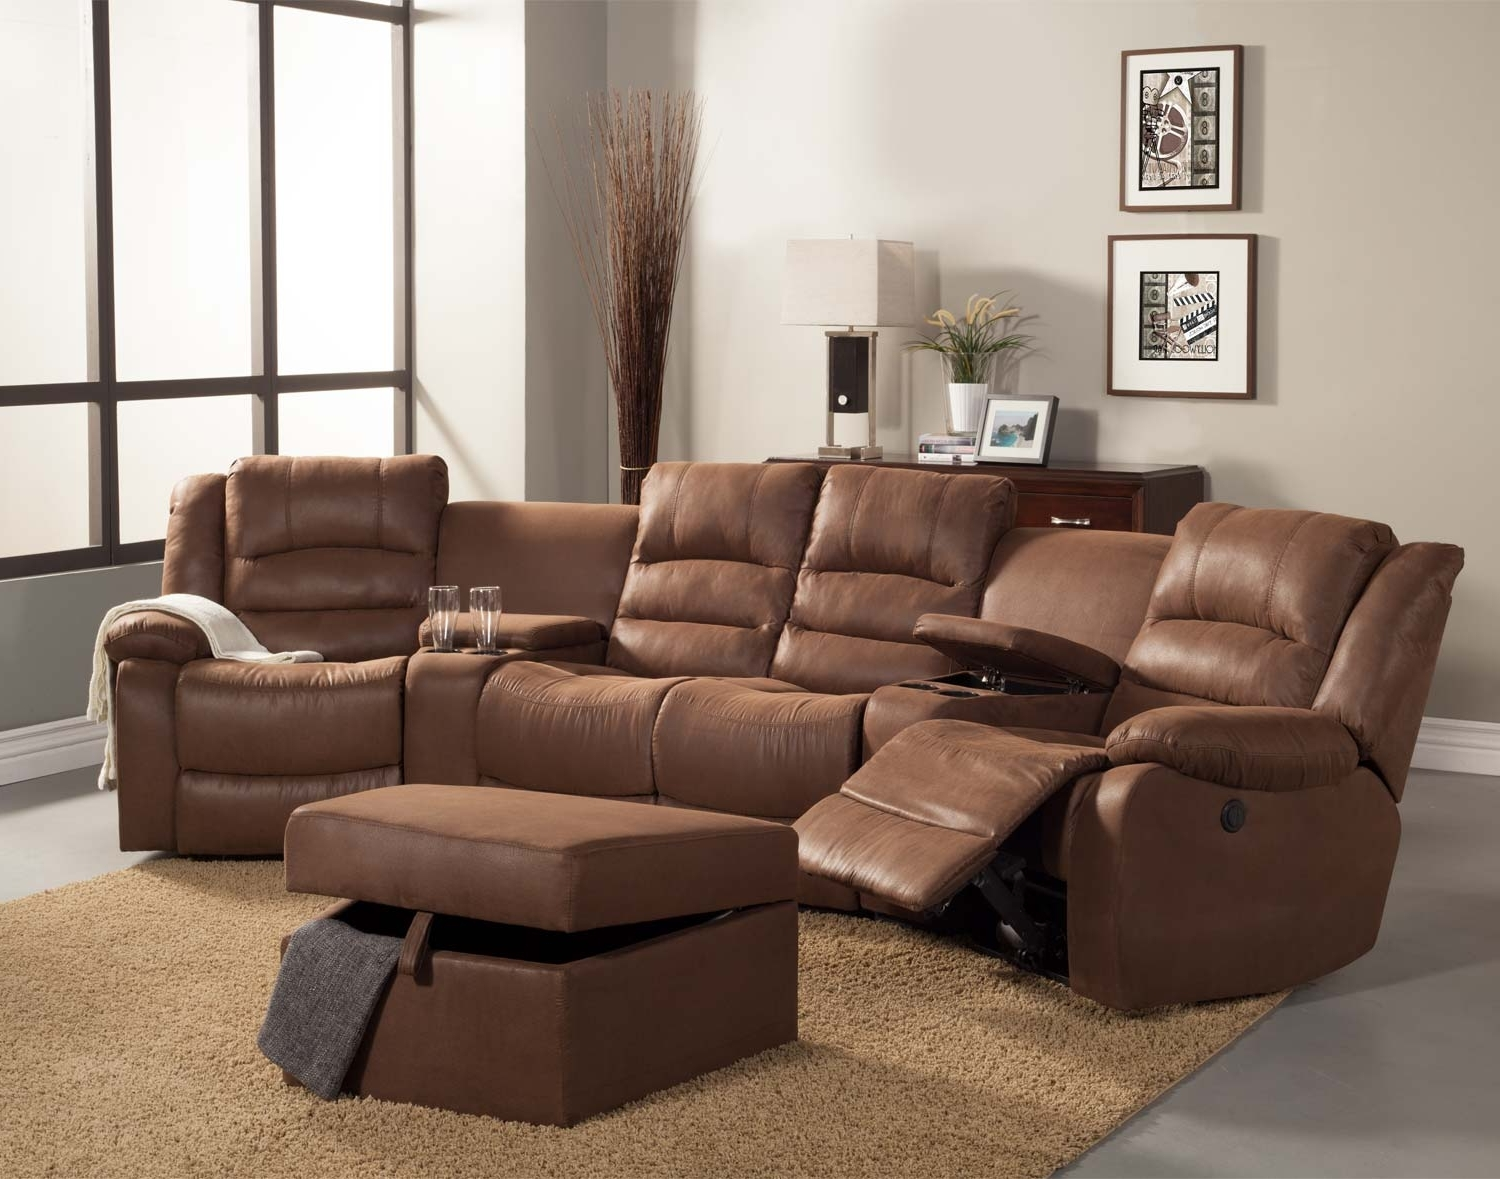 Joplin Mo Sectional Sofas Throughout Fashionable Homelegance Tucker Sectional Sofa Set – Brown – Bomber Jacket (View 10 of 20)